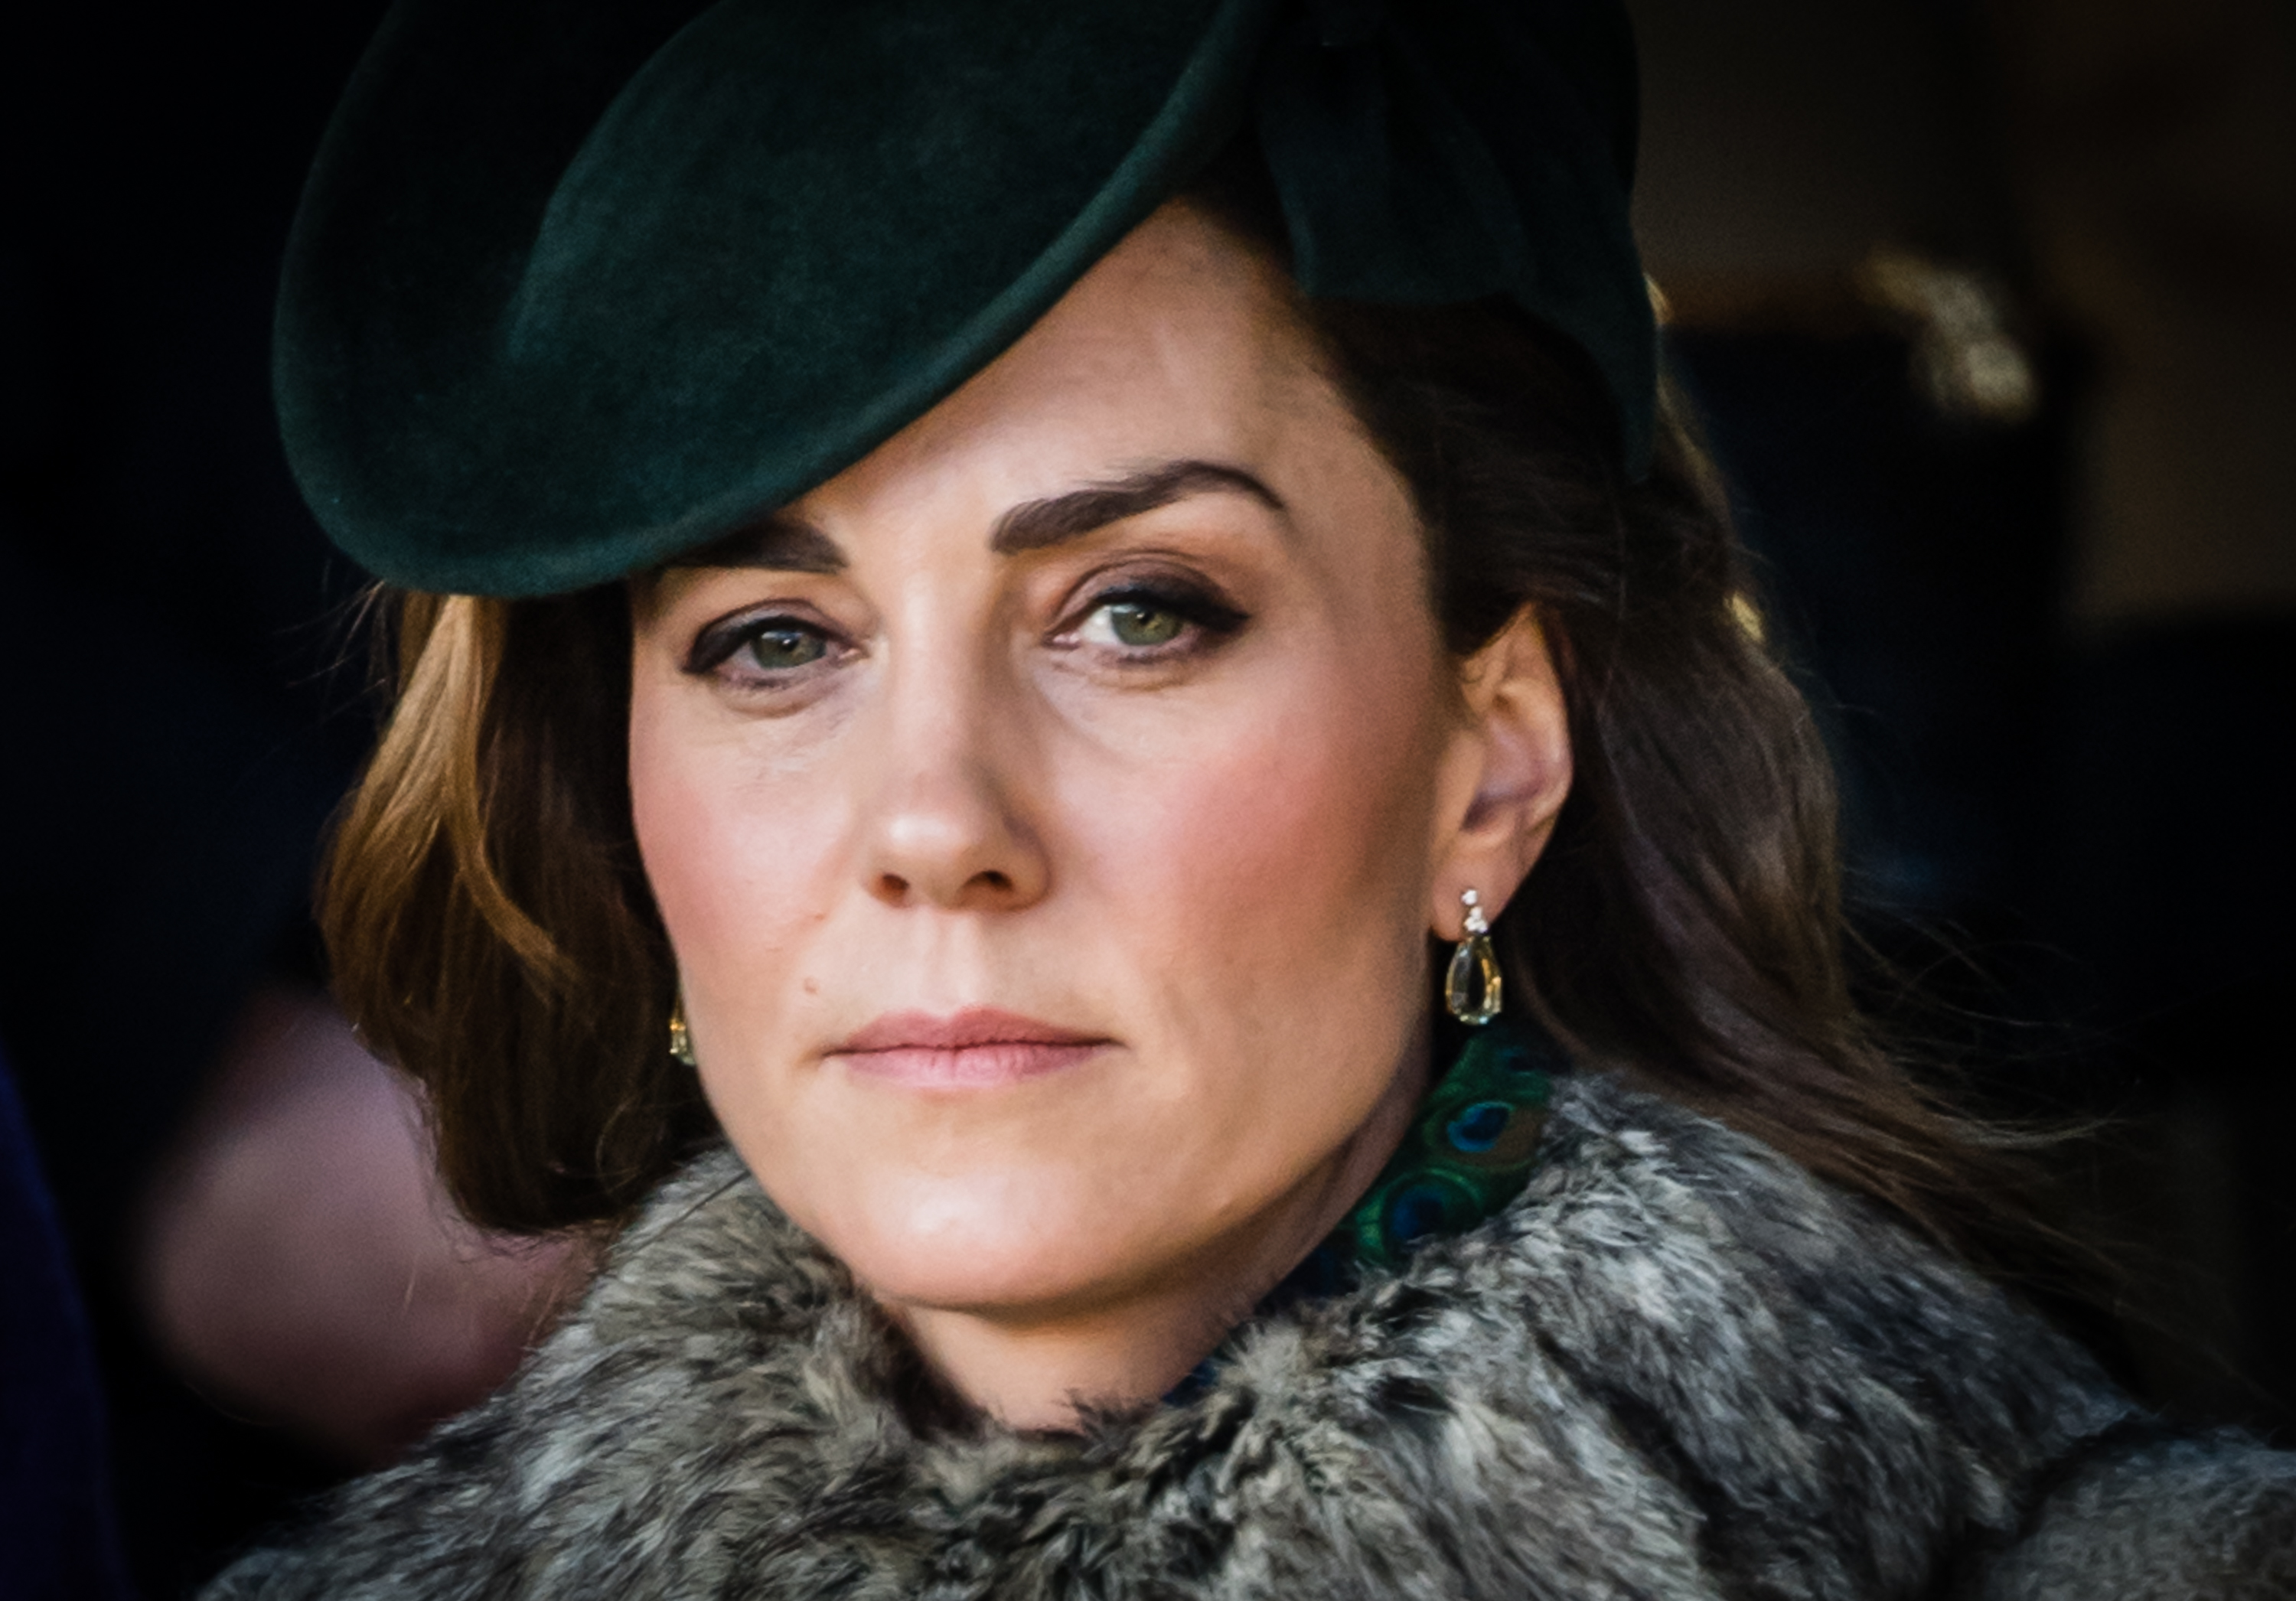 KING'S LYNN, ENGLAND - DECEMBER 25:  Catherine, Duchess of Cambridge attends the Christmas Day  Church service at Church of St Mary Magdalene on the Sandringham estate on December 25, 2019 in King's Lynn, United Kingdom. (Photo by Pool/Samir Hussein/WireImage)